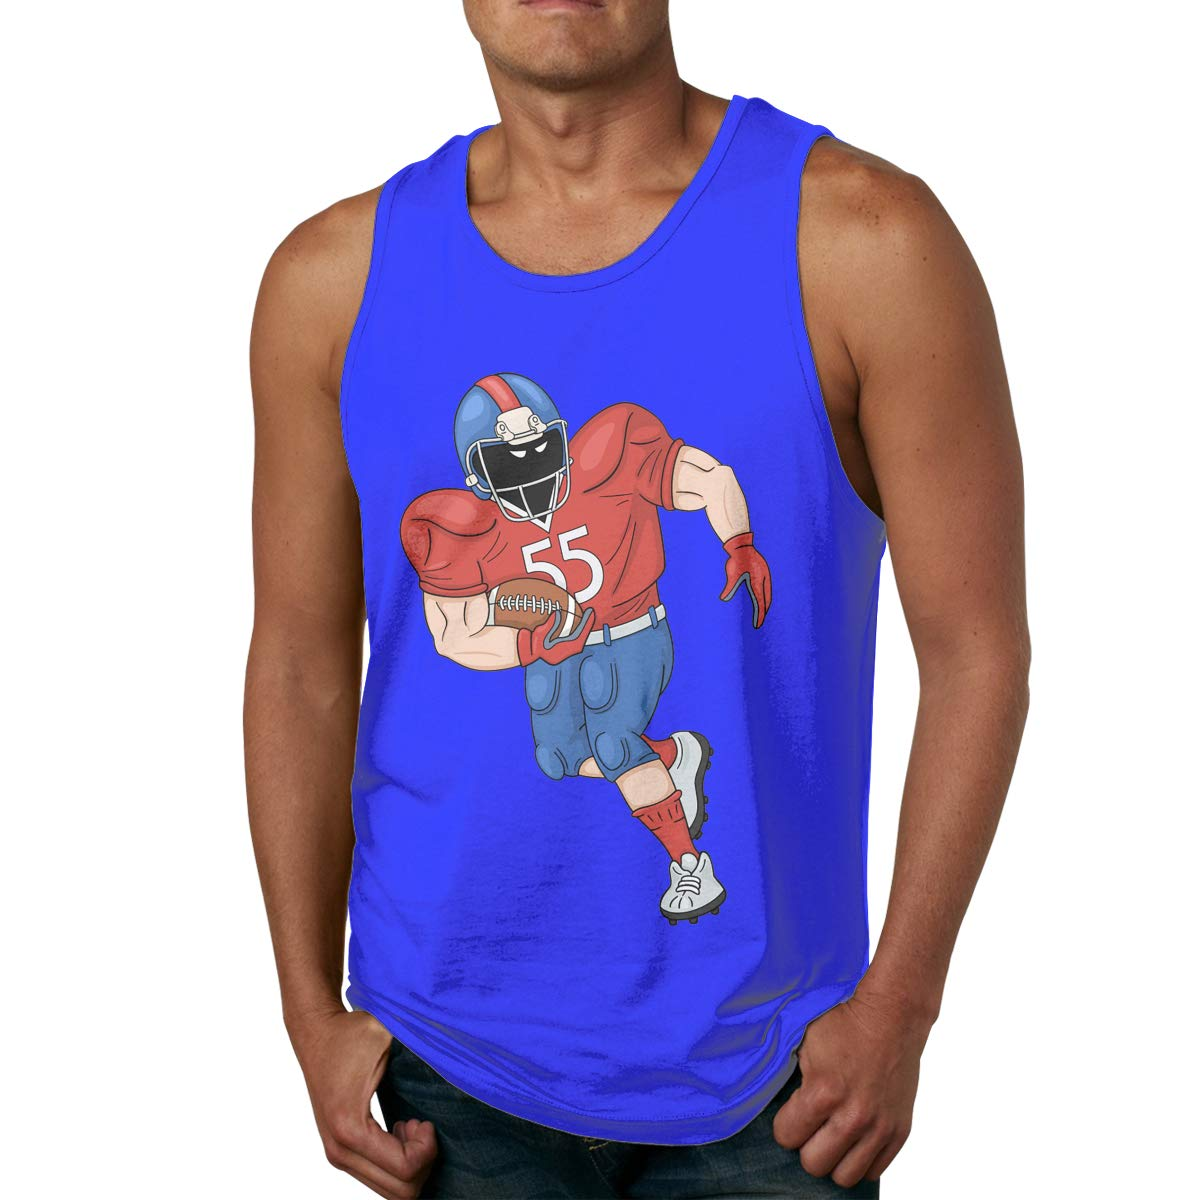 Huiliyuanshiye Custom Fashion American Football Training Tank Tops for Men